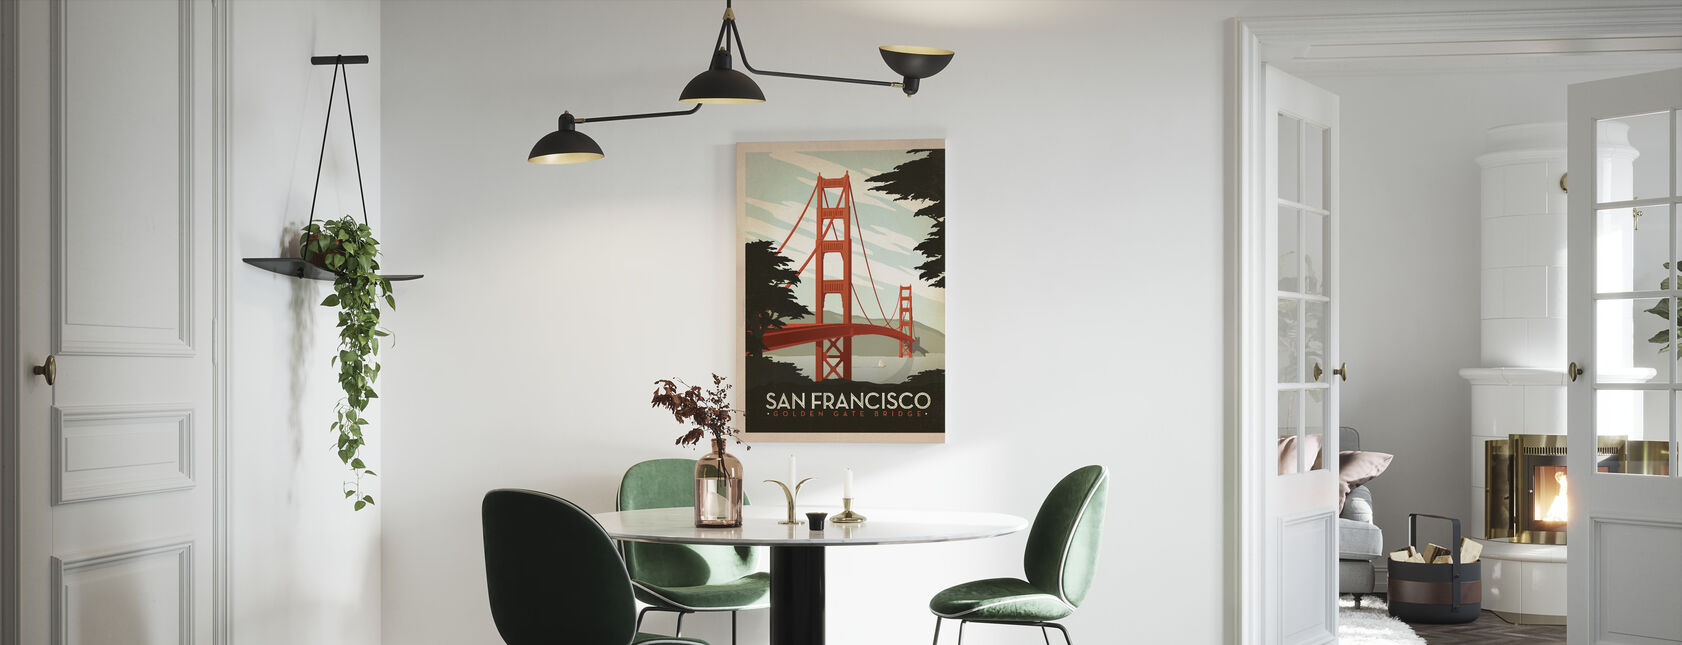 San Francisco - Canvas print - Kitchen